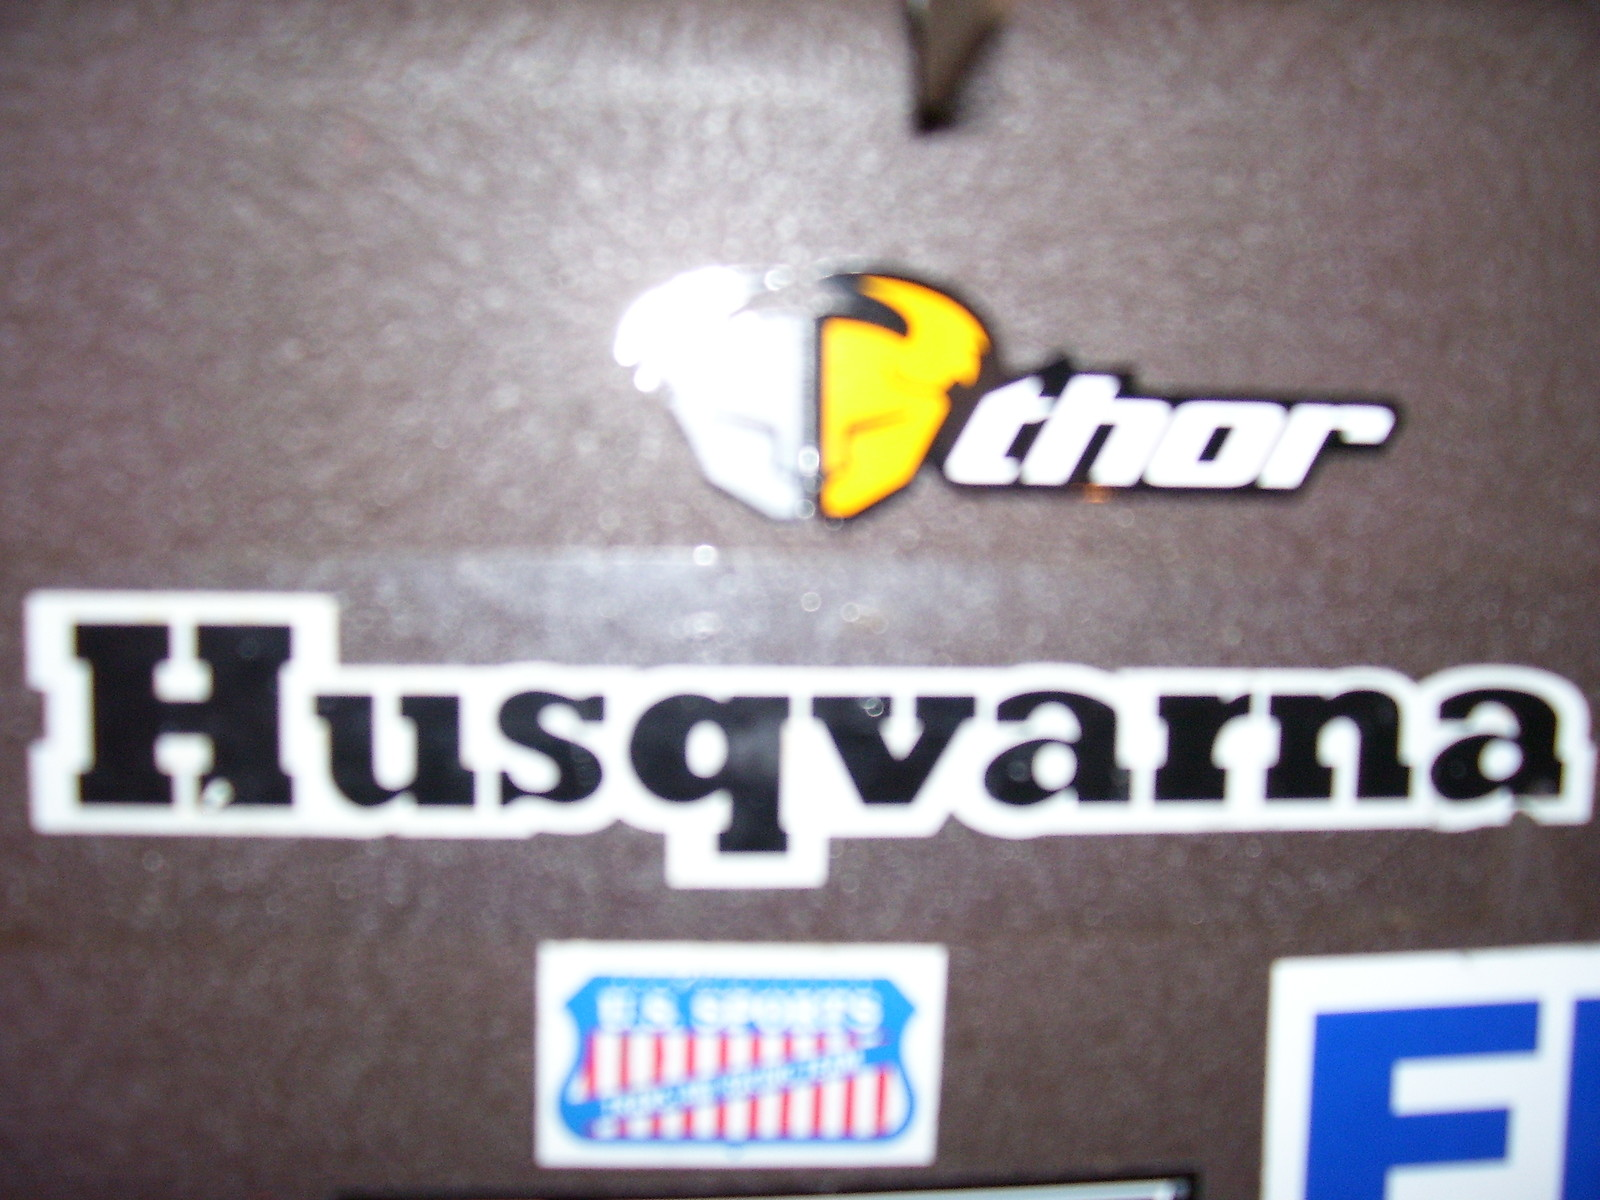 My old school tool box! - observer - Motocross Pictures - Vital MX